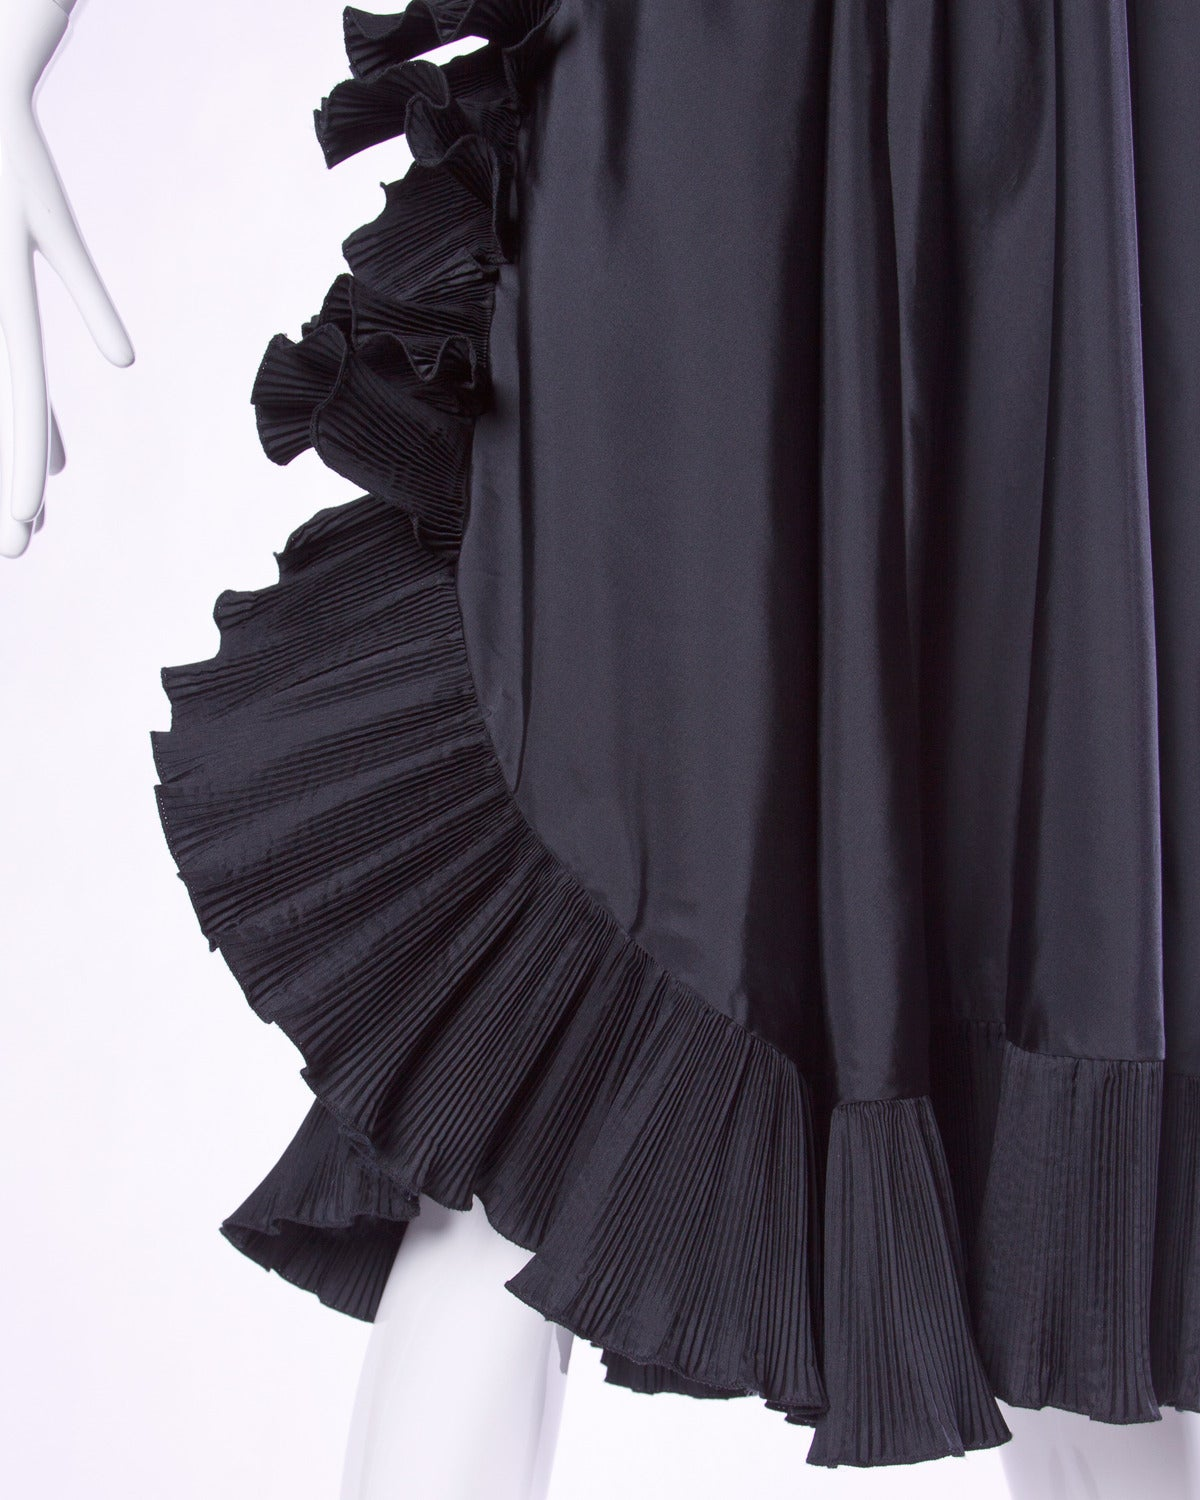 Saks Fifth Avenue Vintage Sculptural Origami Pleated Formal Dress In Excellent Condition For Sale In Sparks, NV